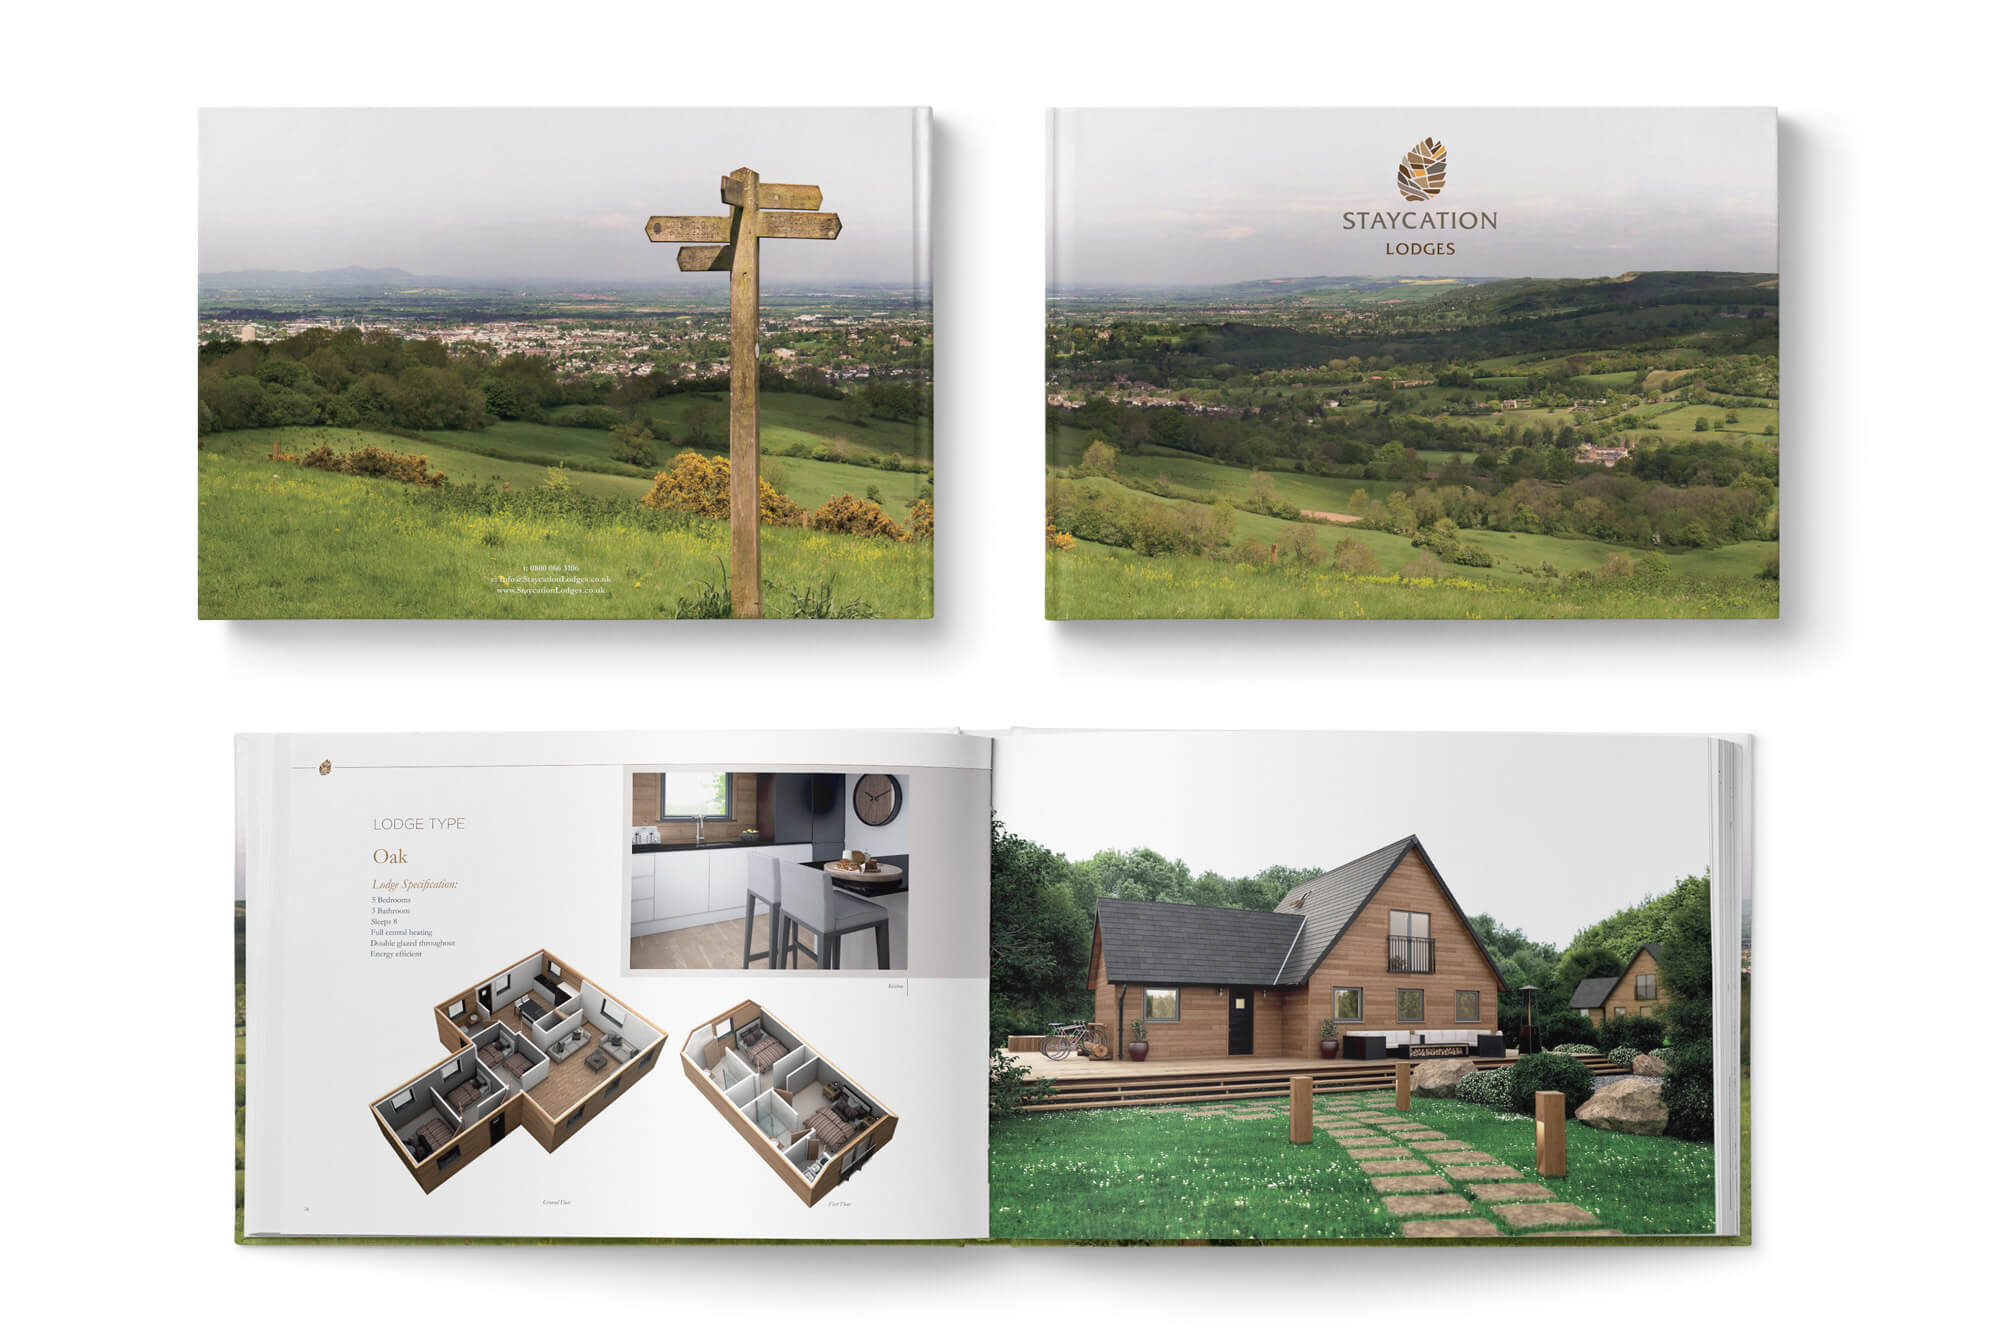 staycation-lodges-brochure-2